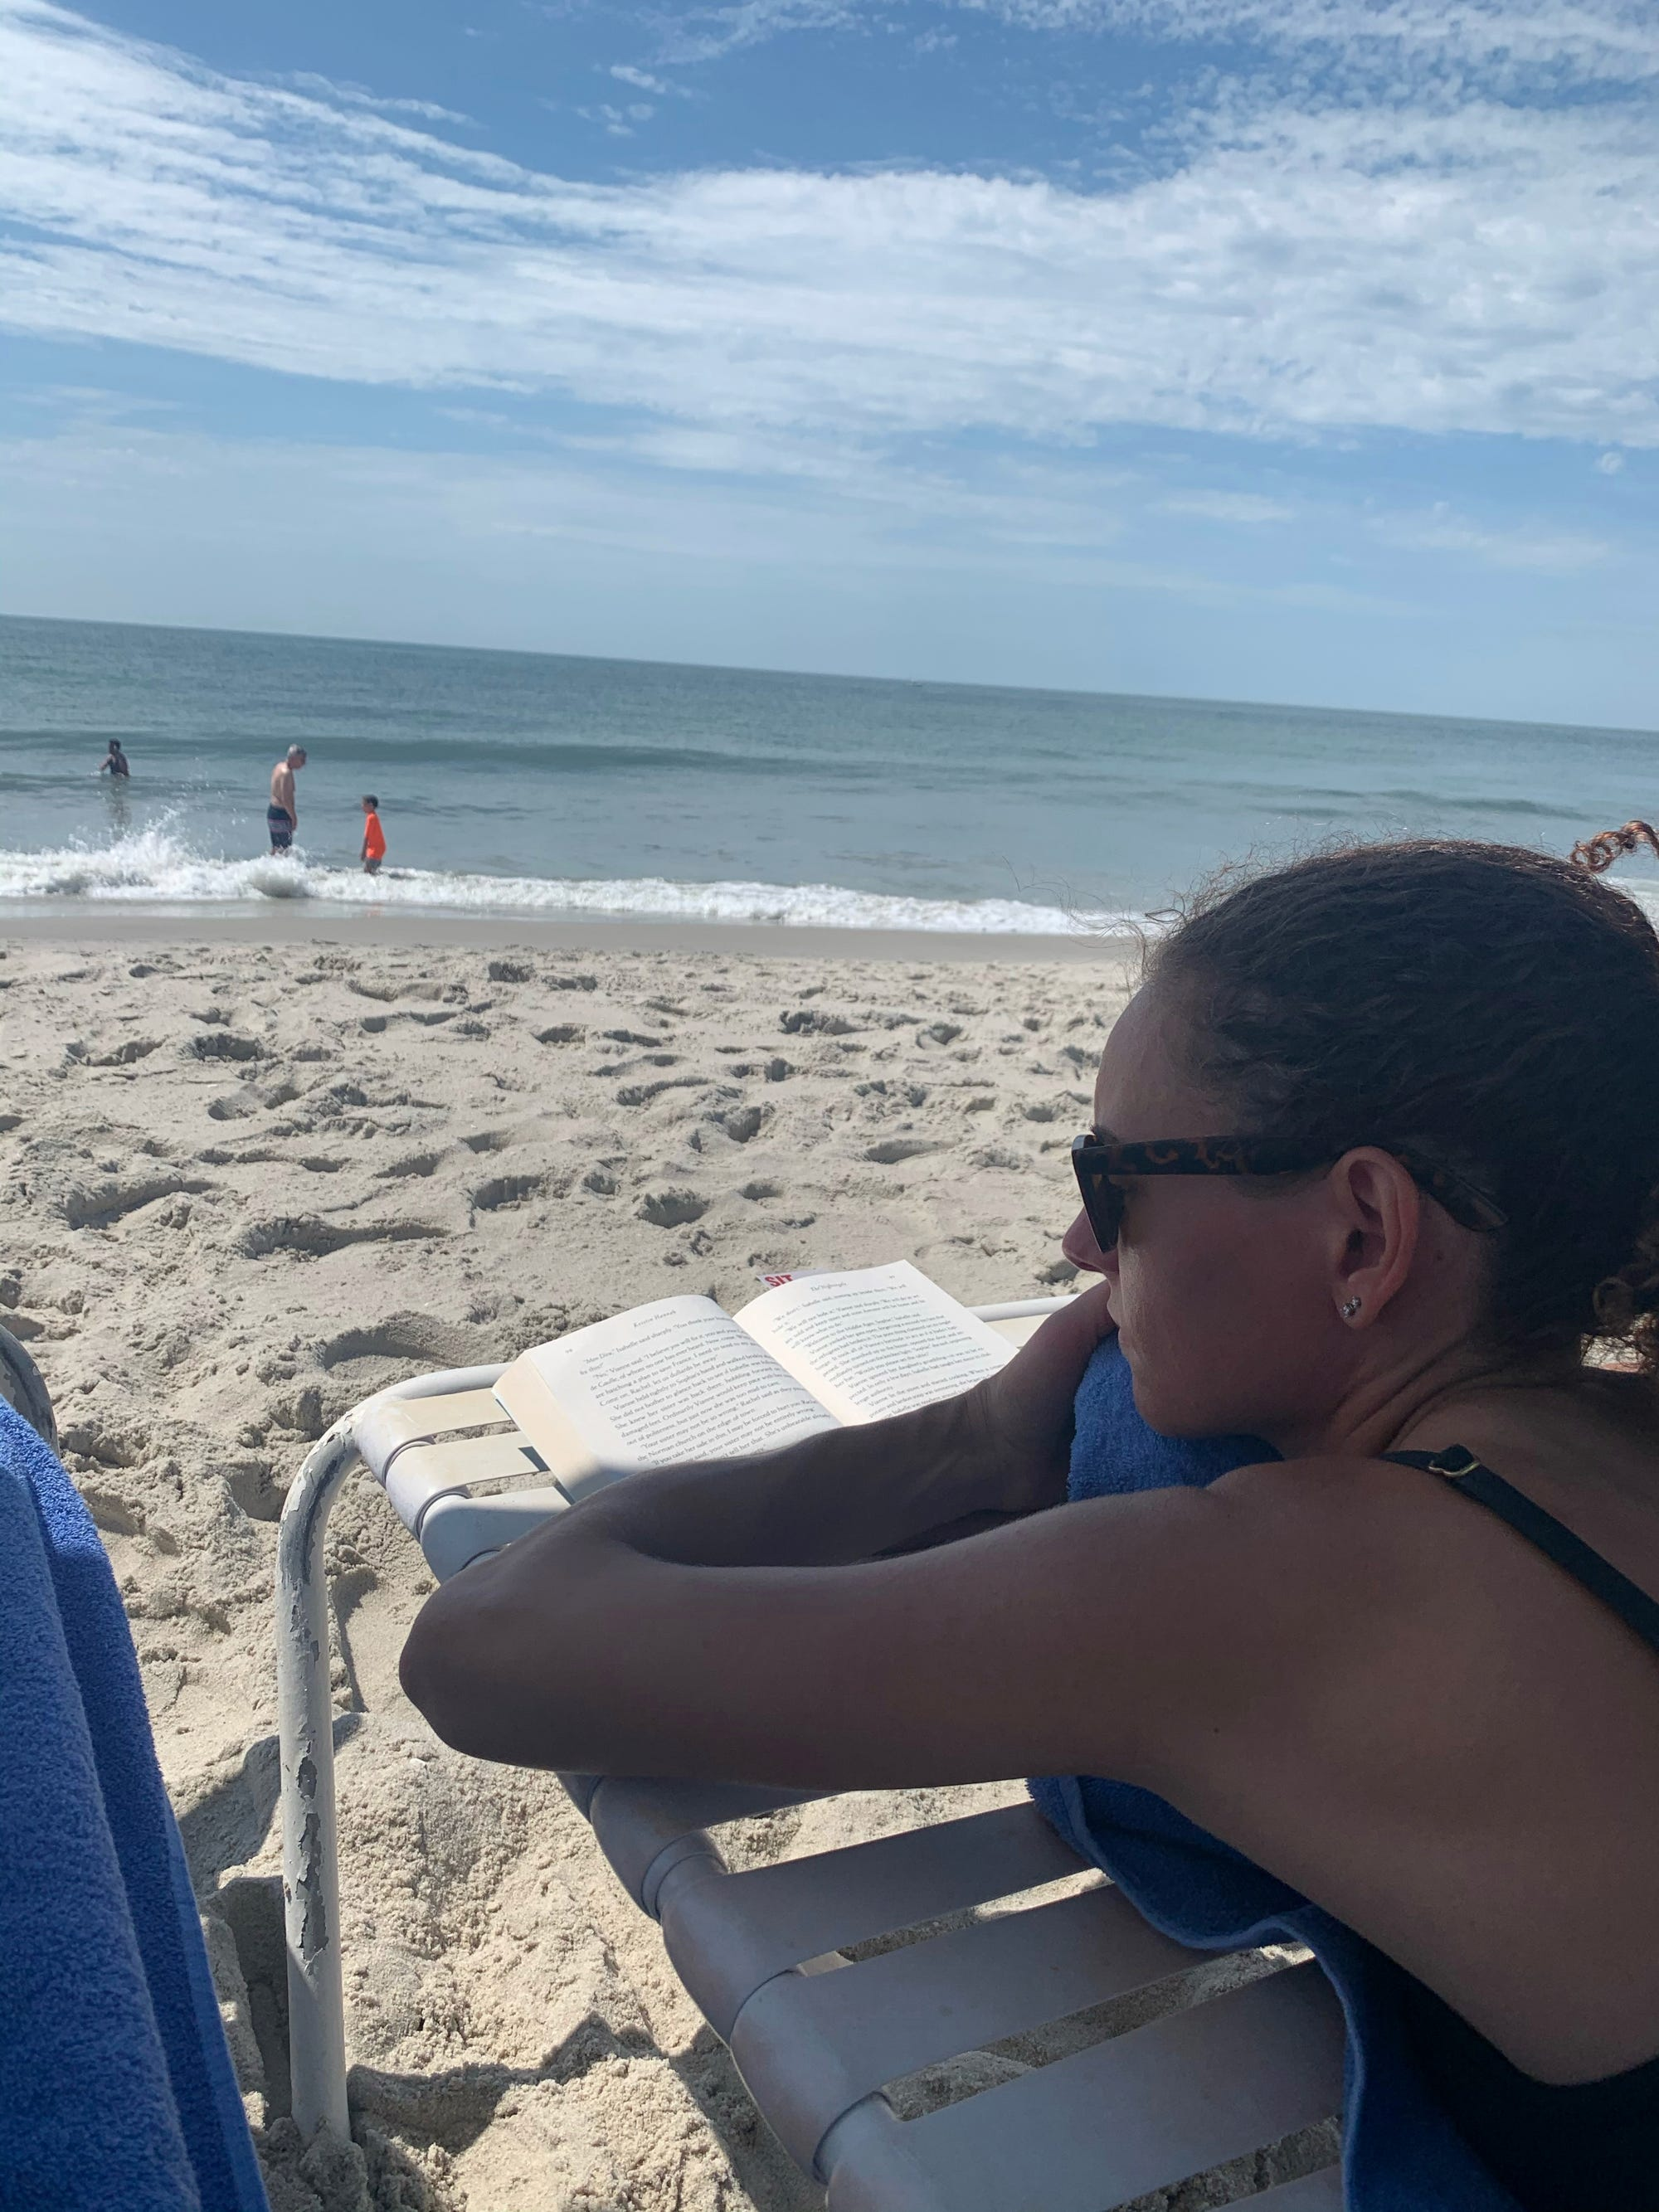 Phil Dengler's girlfriend, Robin England, lounges on the beach during their trip to Cape May, New Jersey, in June 2020.